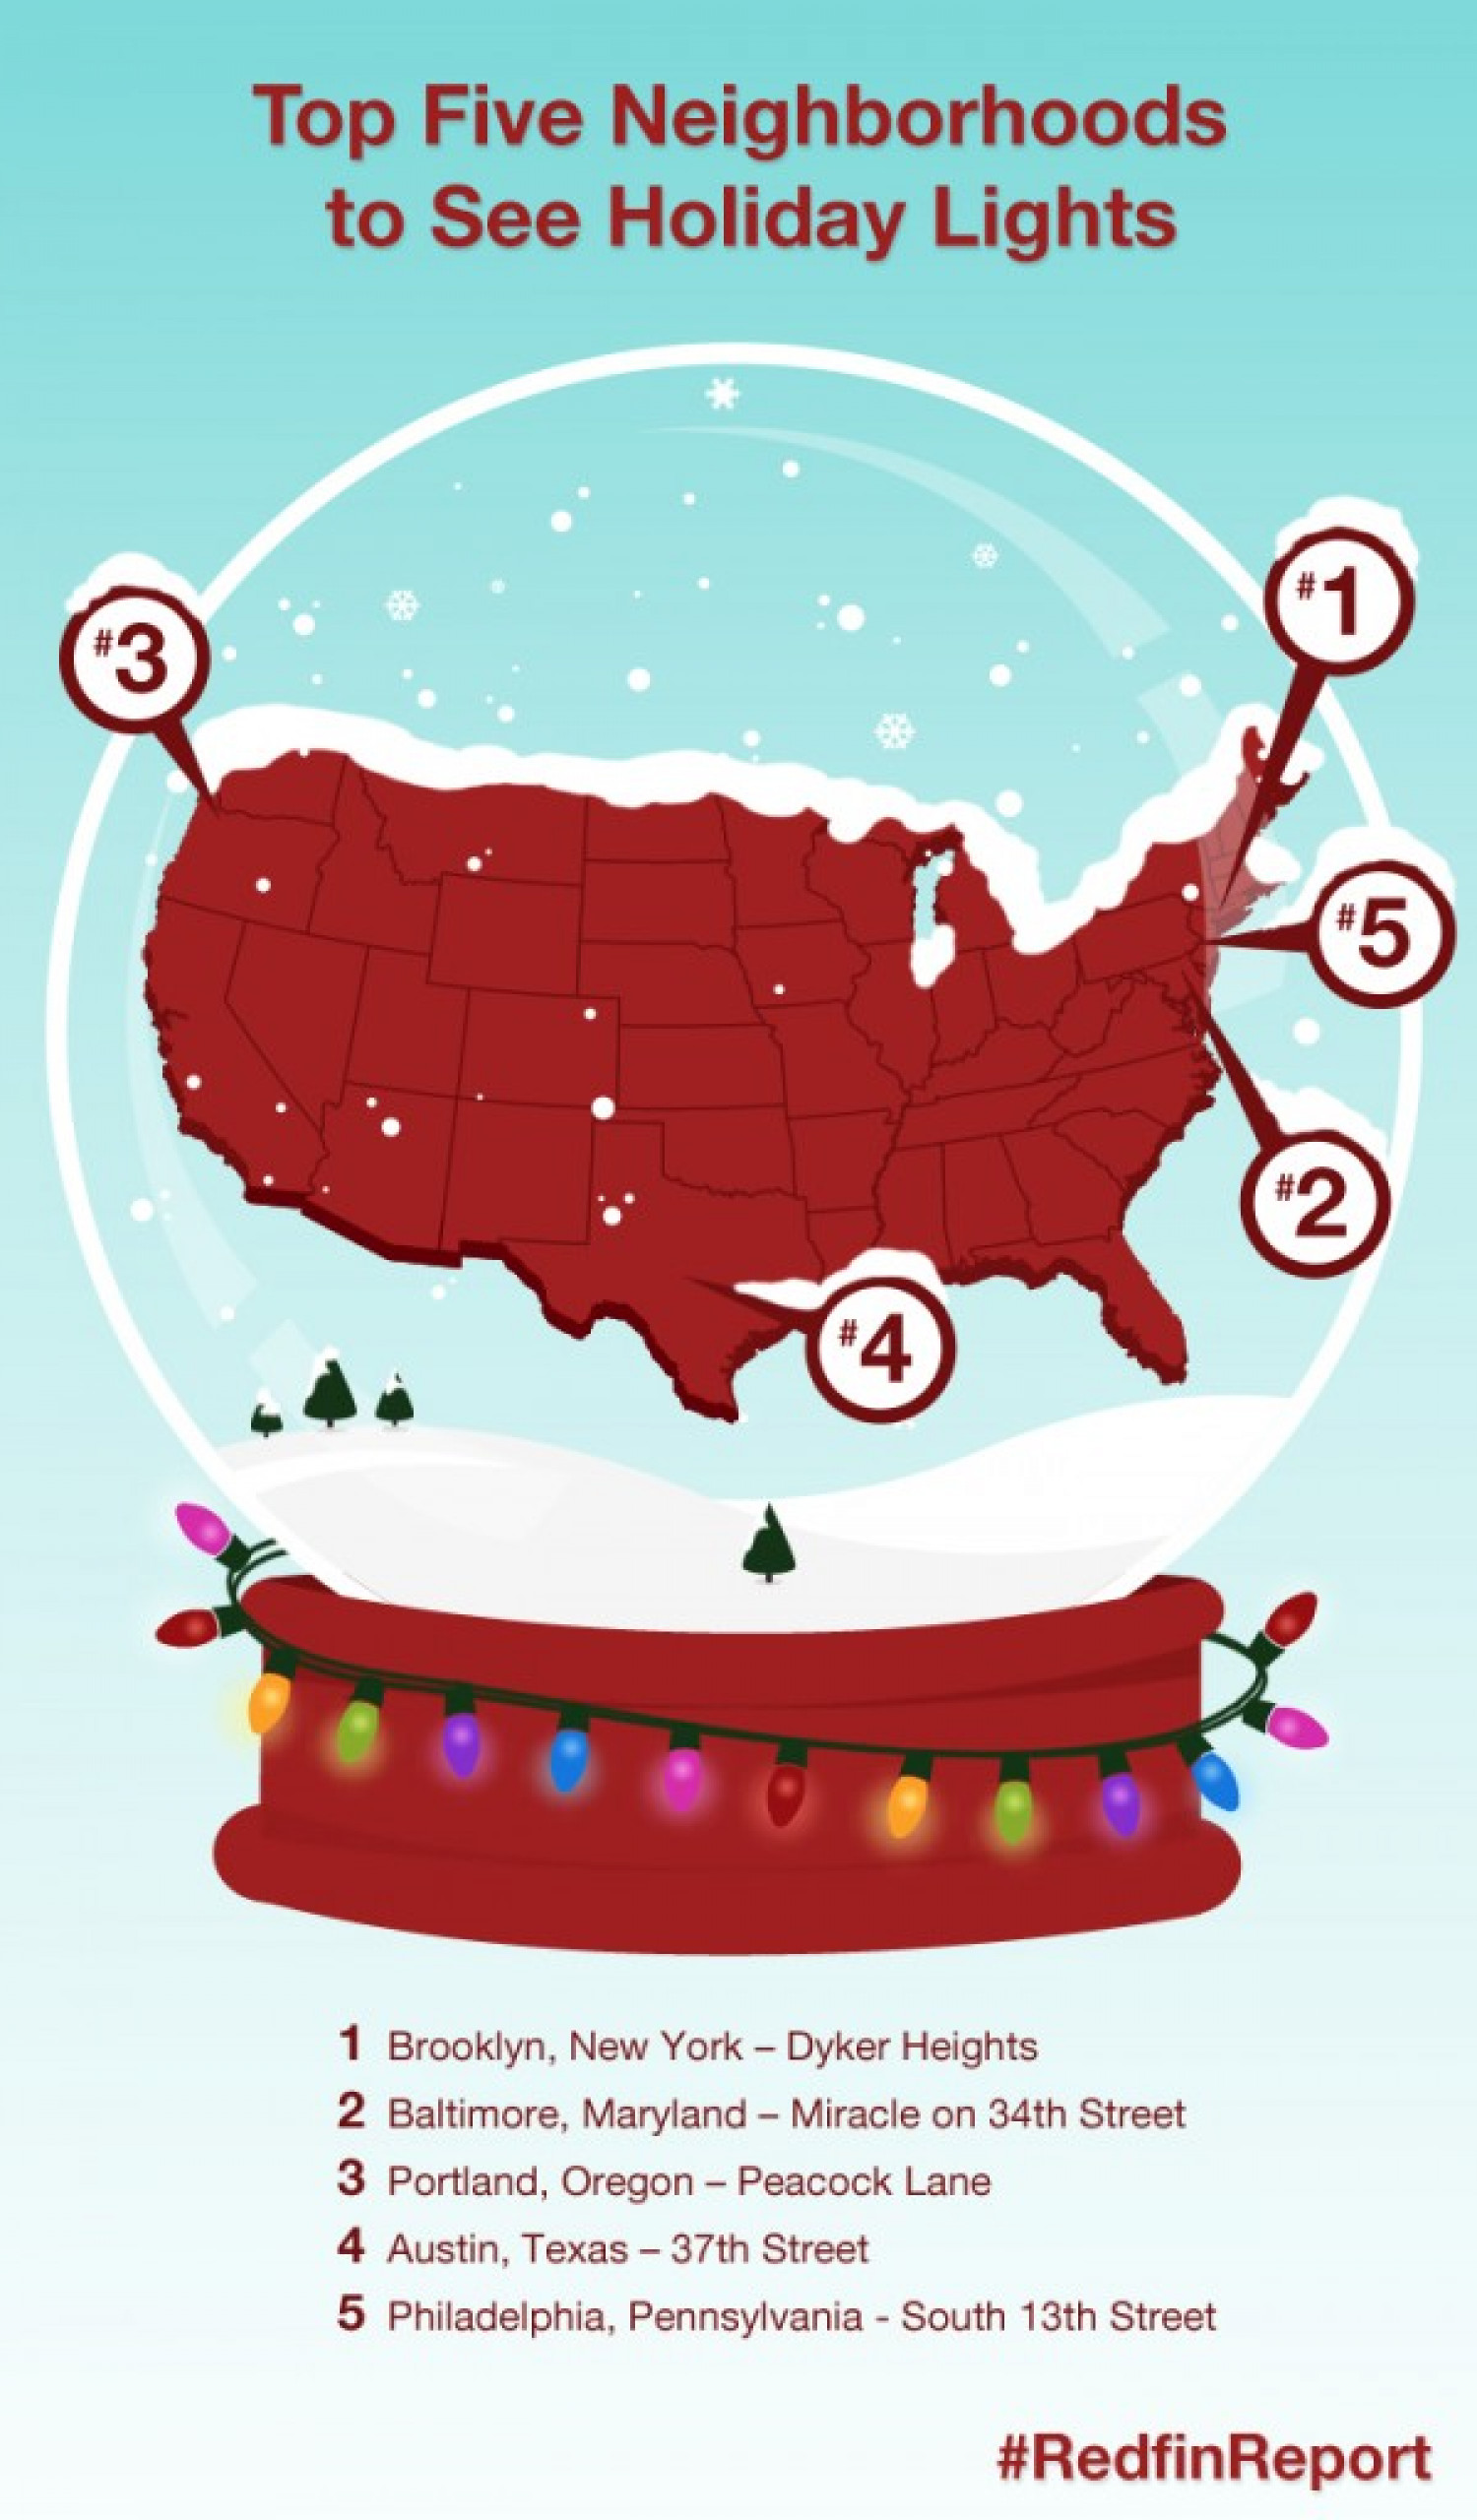 Top Five Neighborhoods to See Holiday Lights in the U.S. Infographic